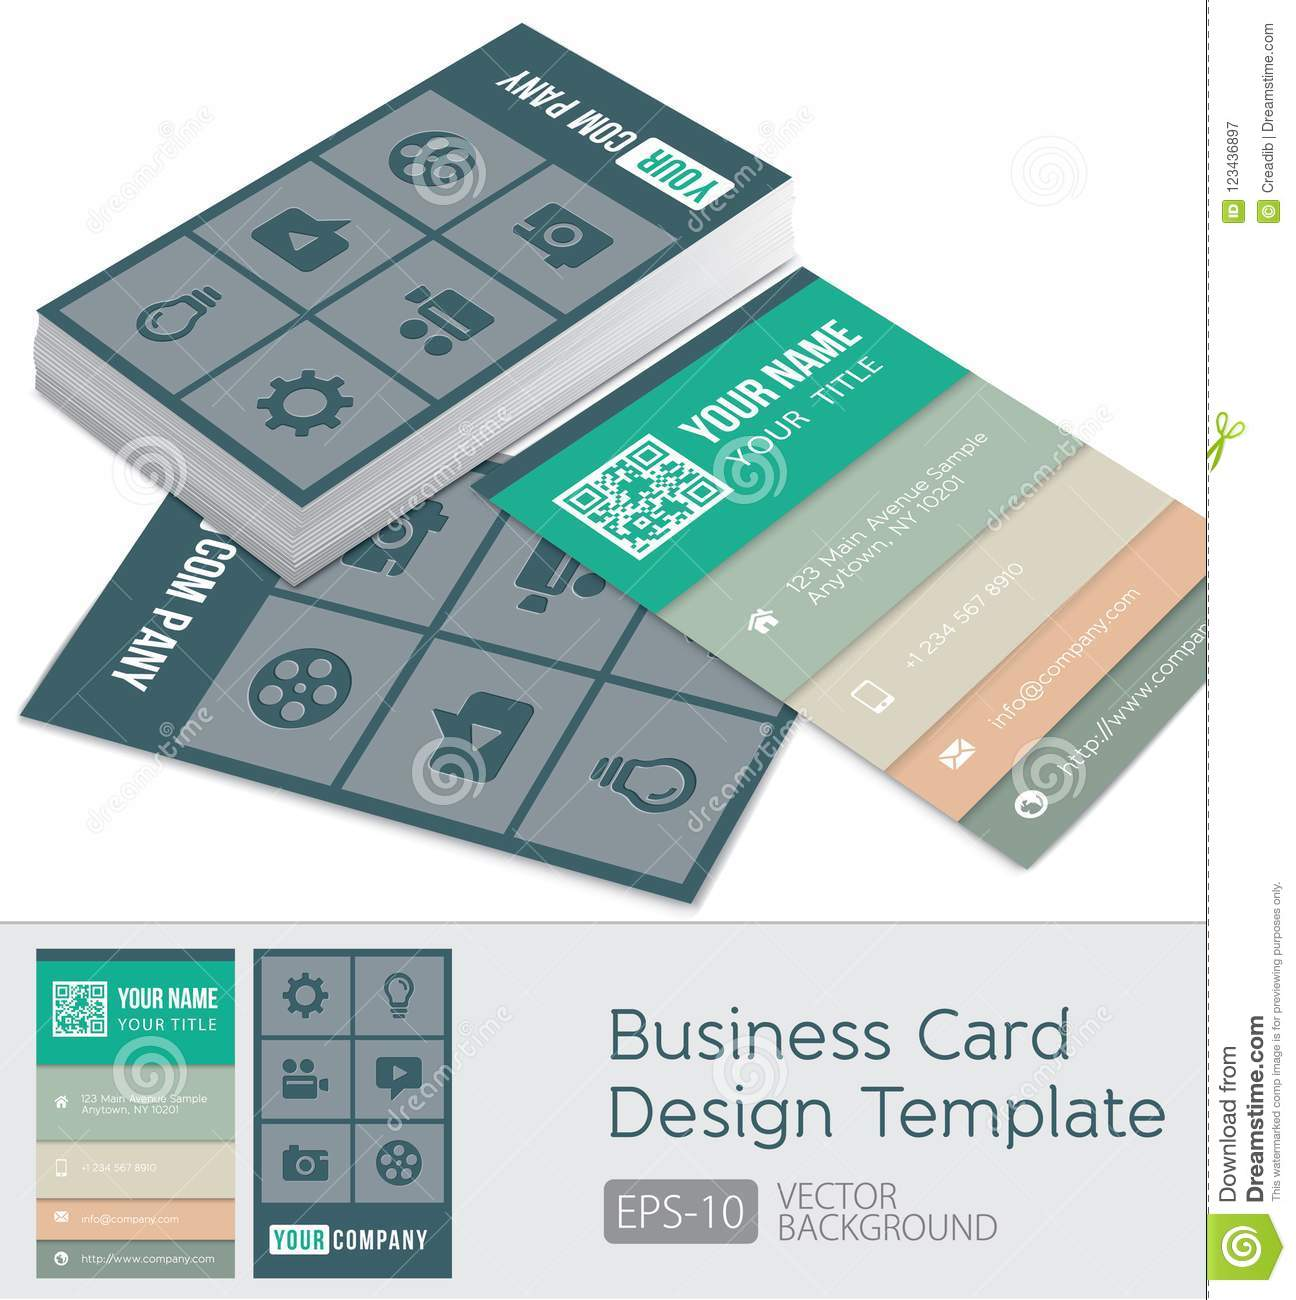 Simplicity business cards design template with illustration 3d stock simplicity business cards design template with illustration 3d cheaphphosting Choice Image